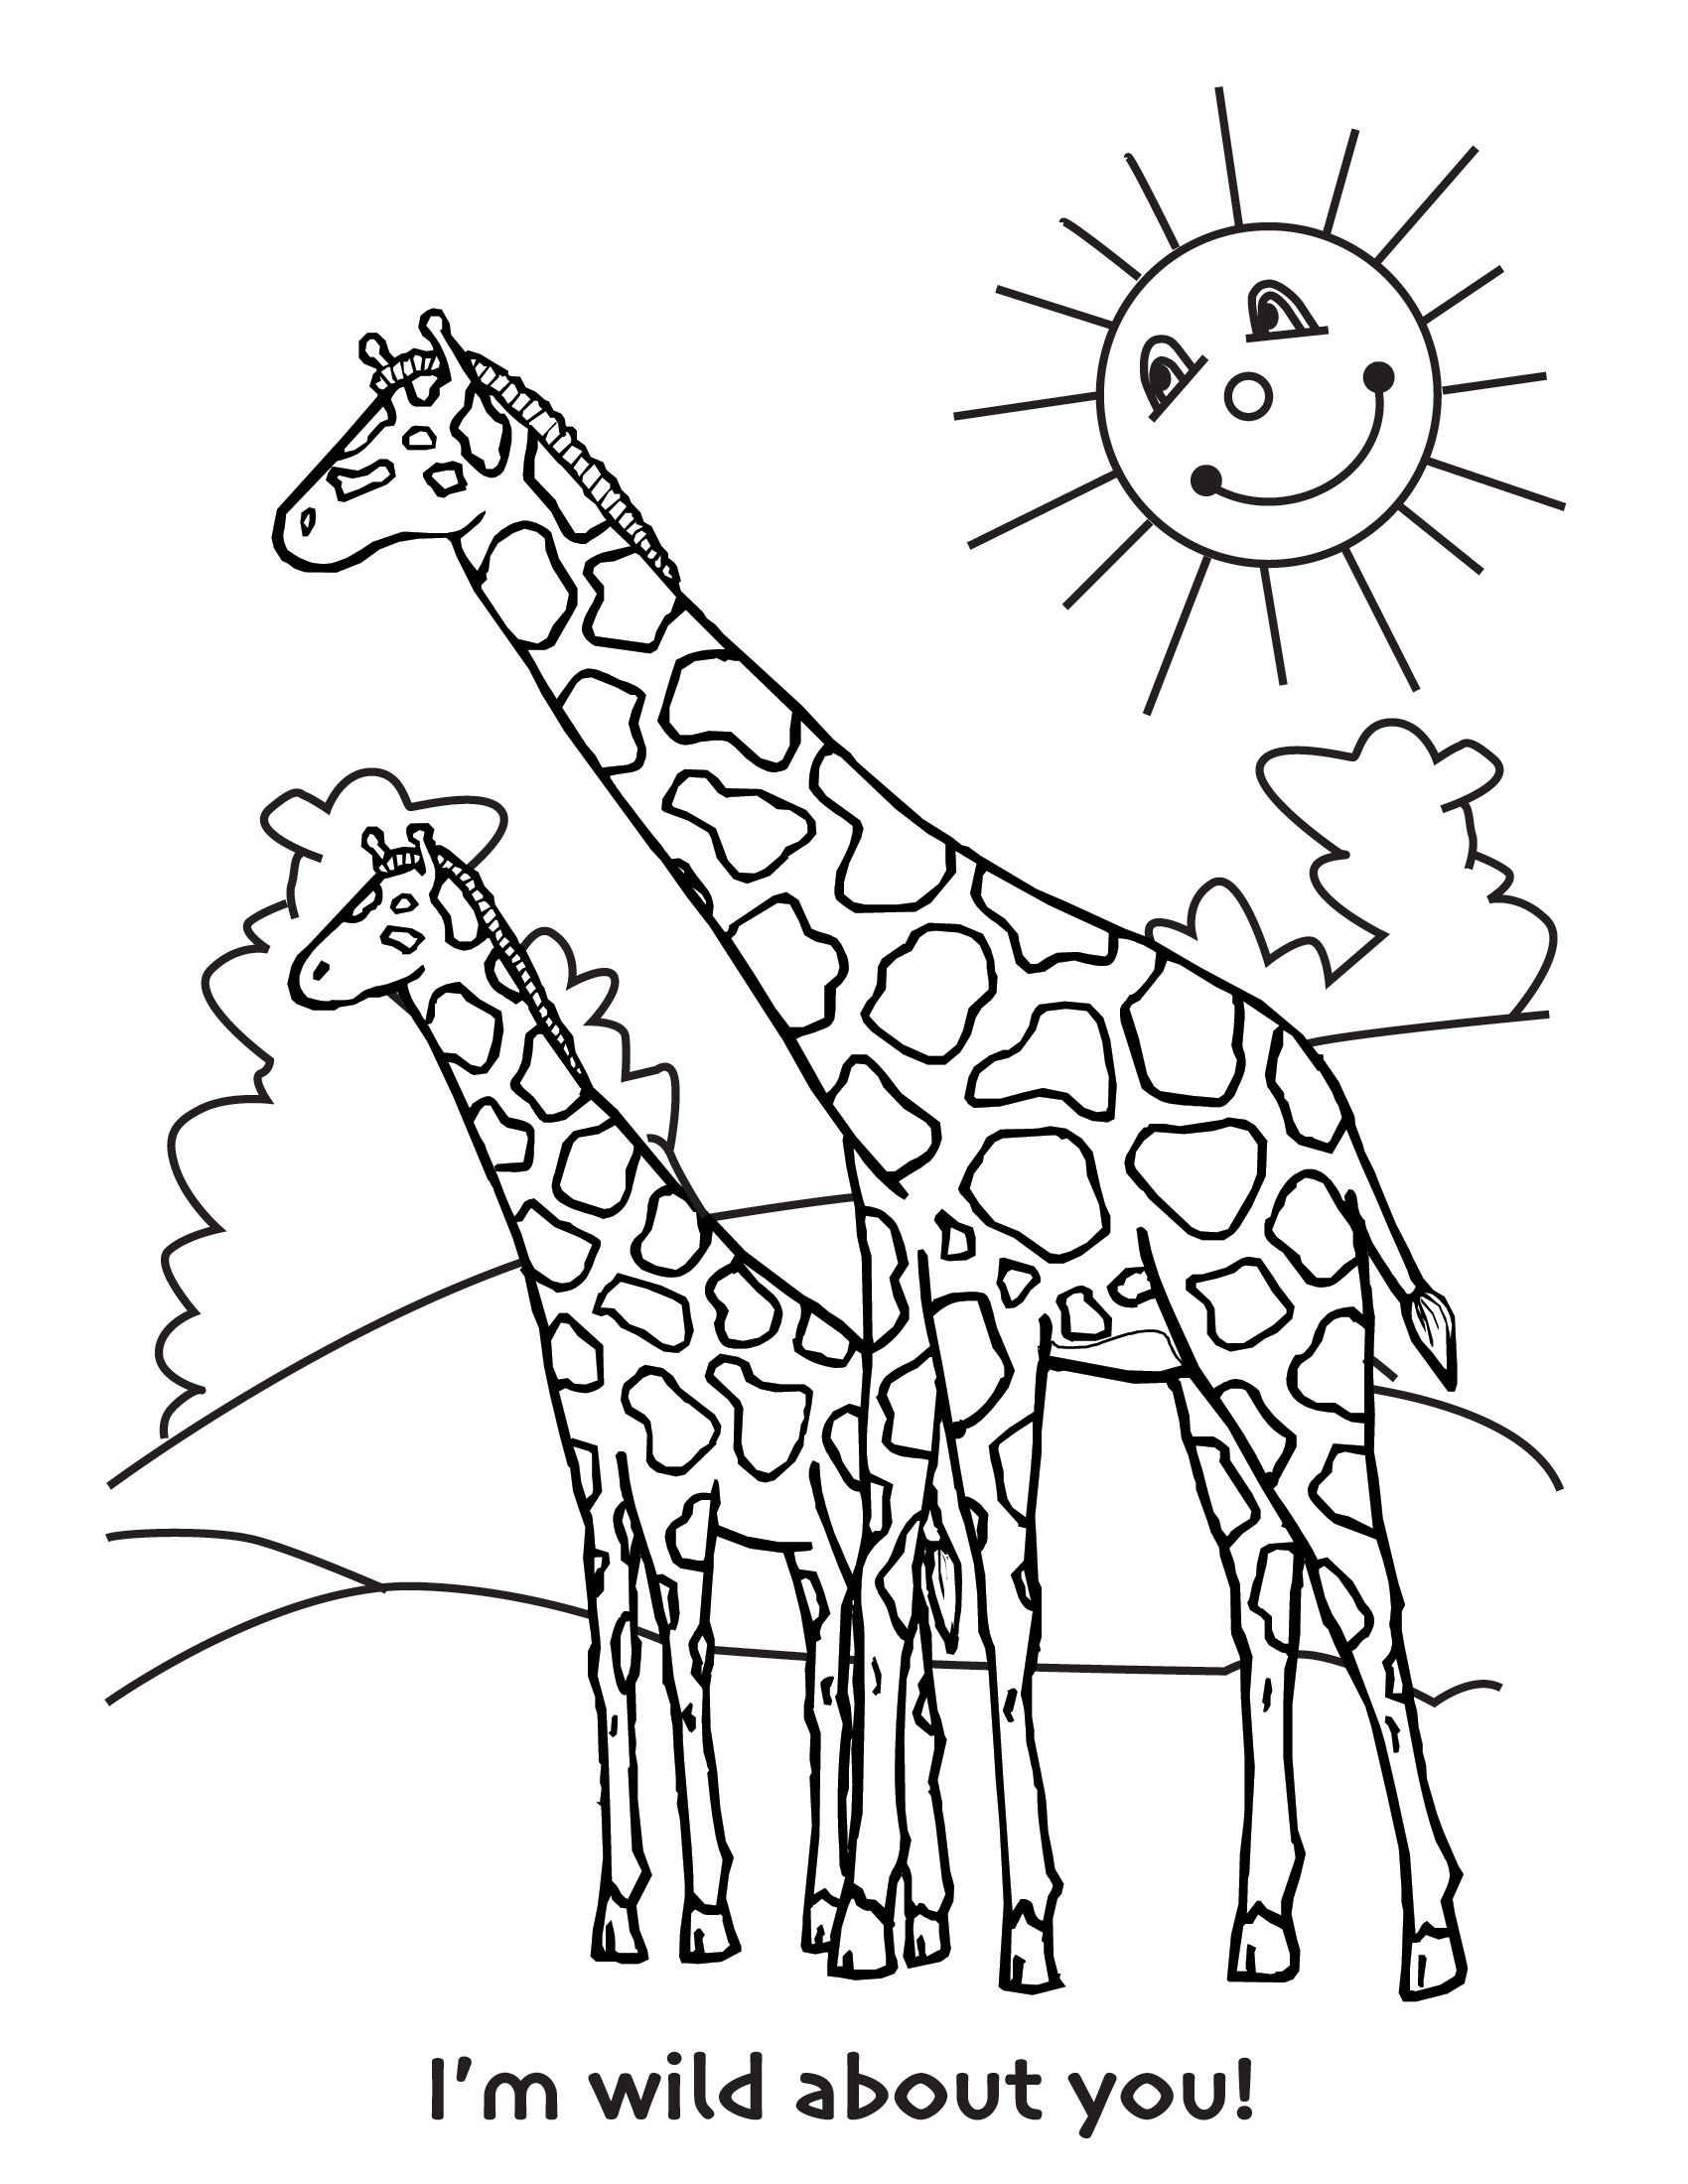 Free Printable Giraffe Coloring Pages For Kids | Baby Shower | Pinterest